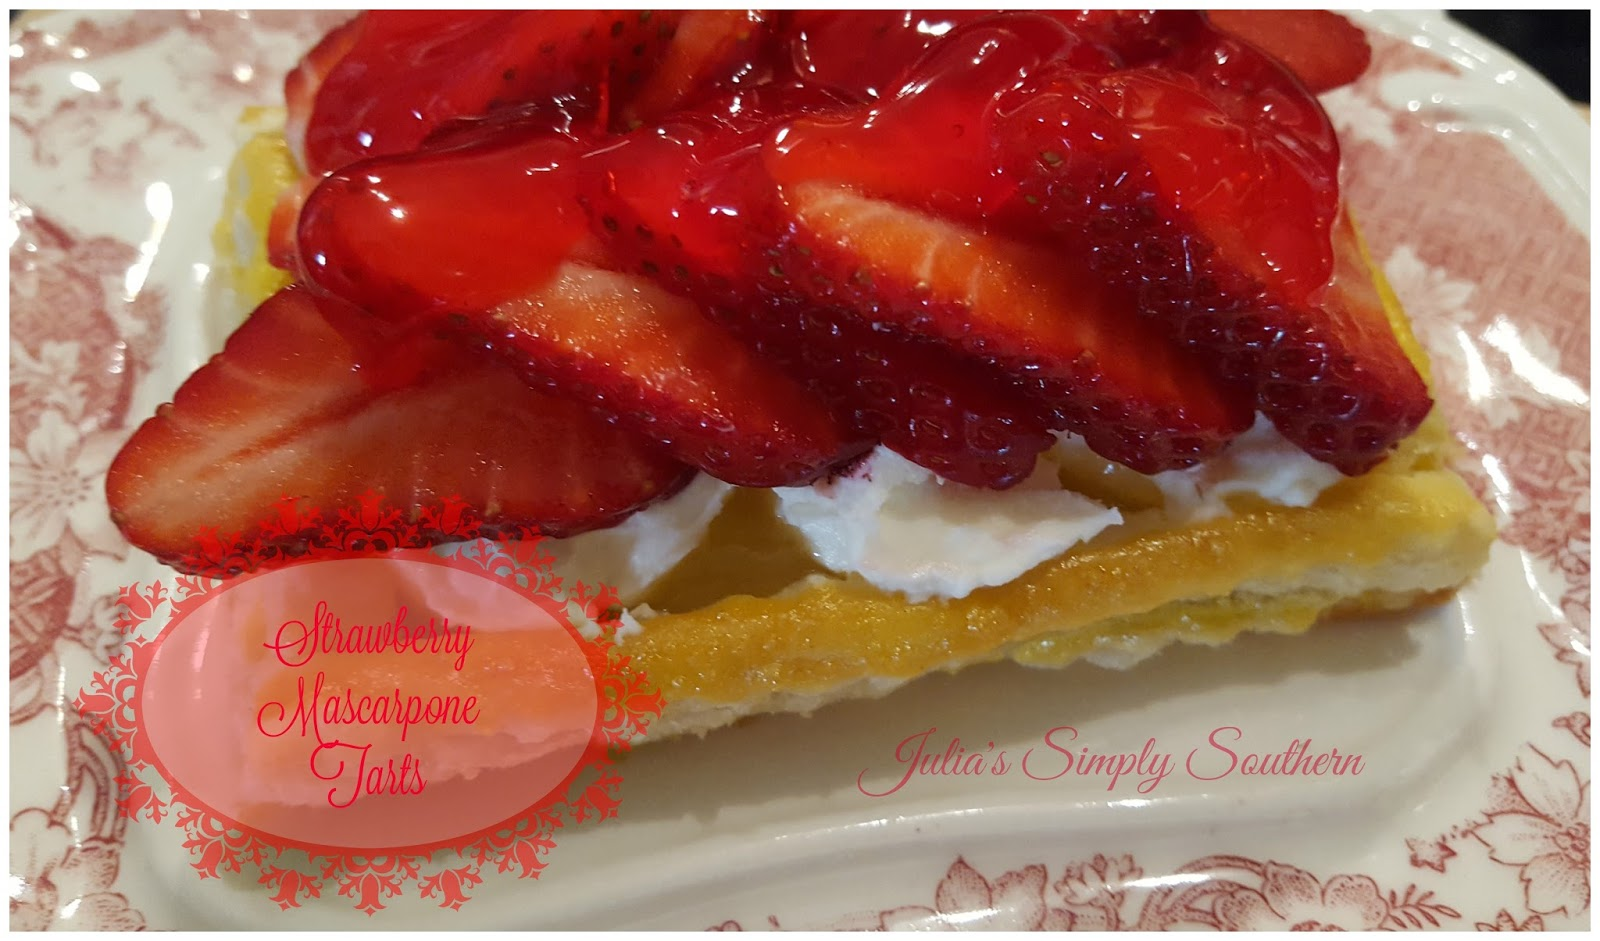 Julia's Simply Southern: Strawberry Mascarpone Tart - 3 Ways